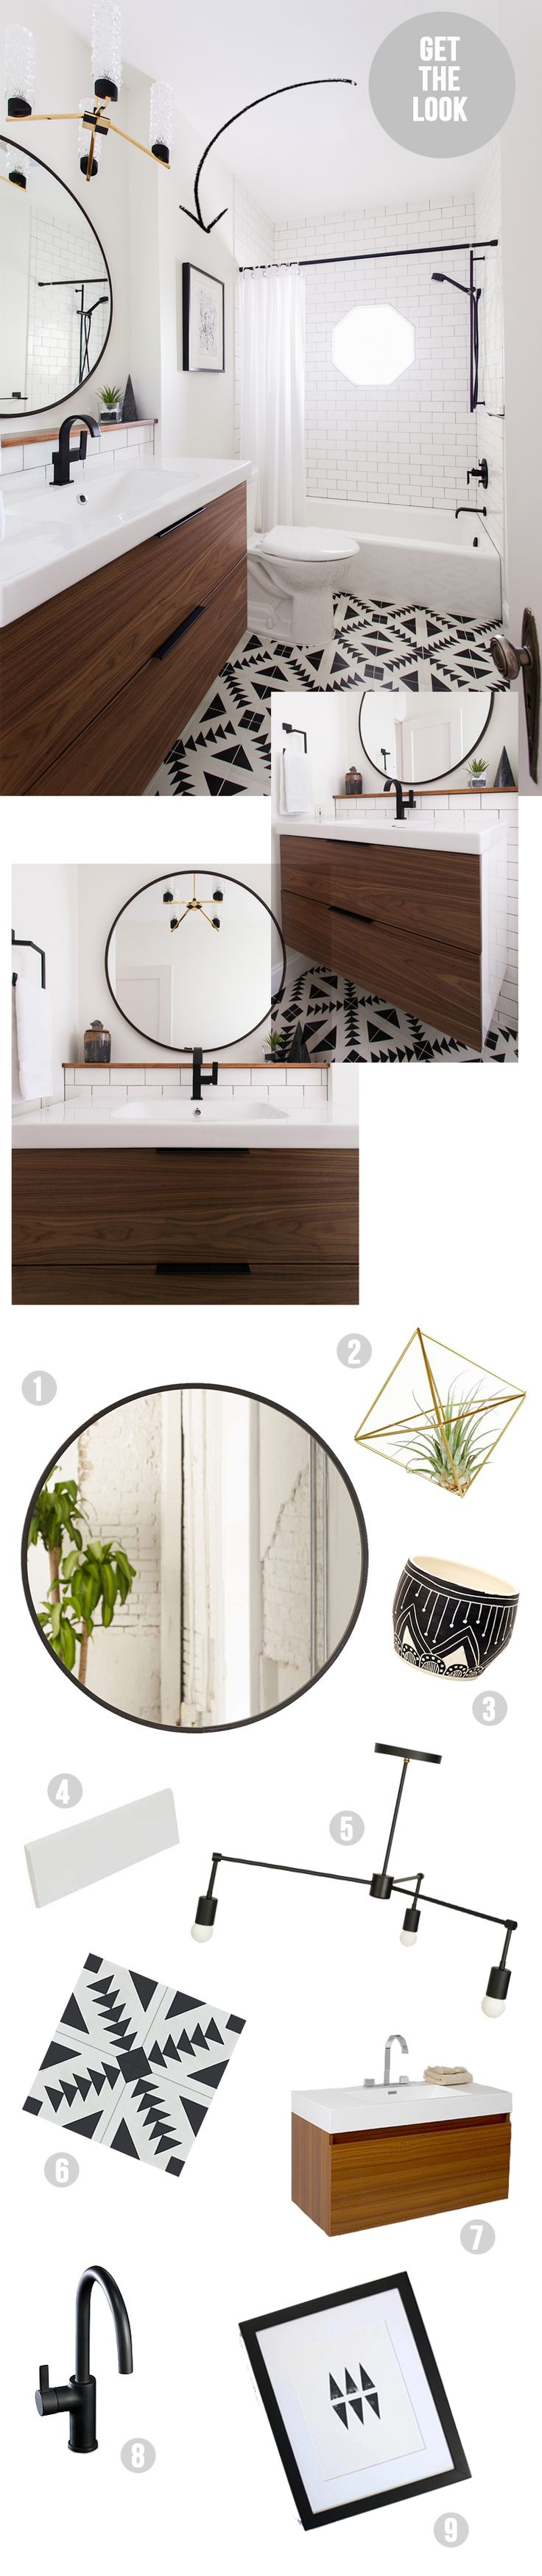 best 25+ bath mirrors ideas on pinterest | rustic kids mirrors